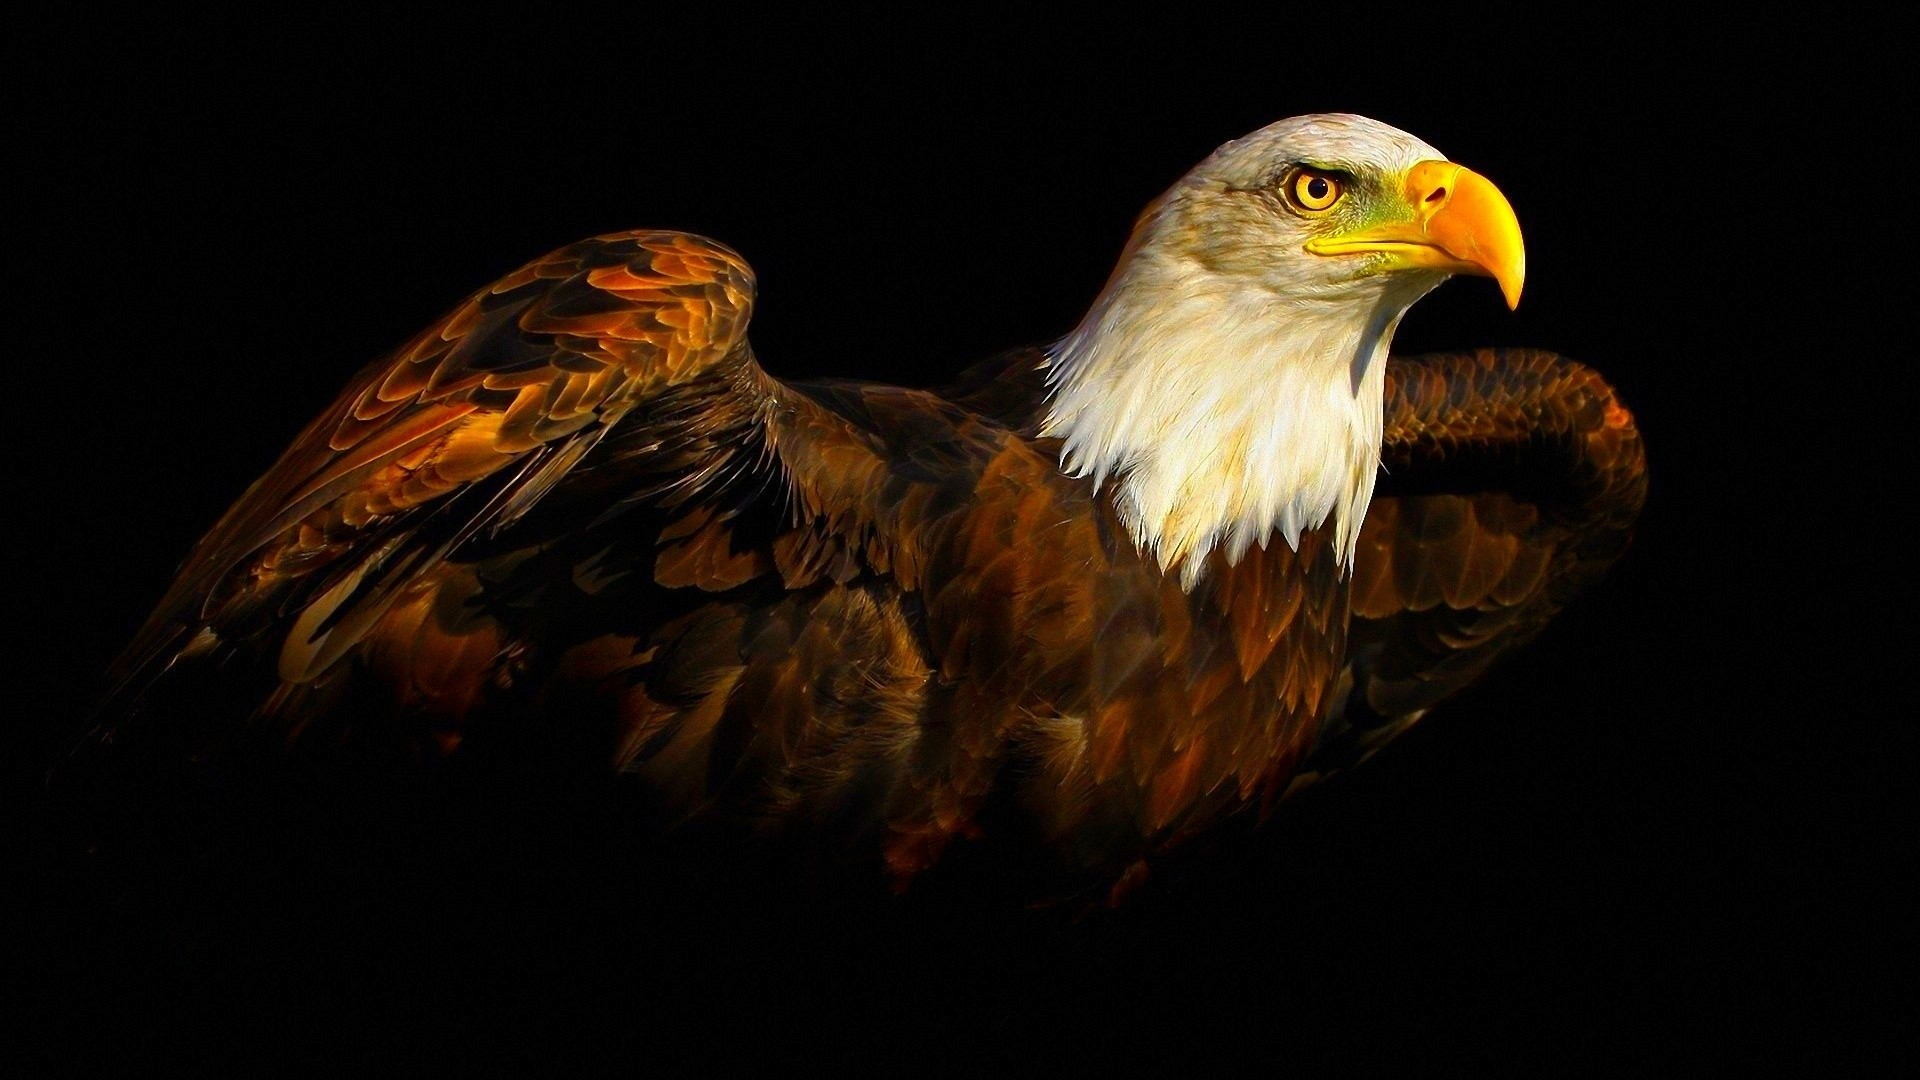 Bald eagle wallpapers 63 images 3840x2160 bald eagles such beautiful birds wallpapers in hd 4k and voltagebd Image collections